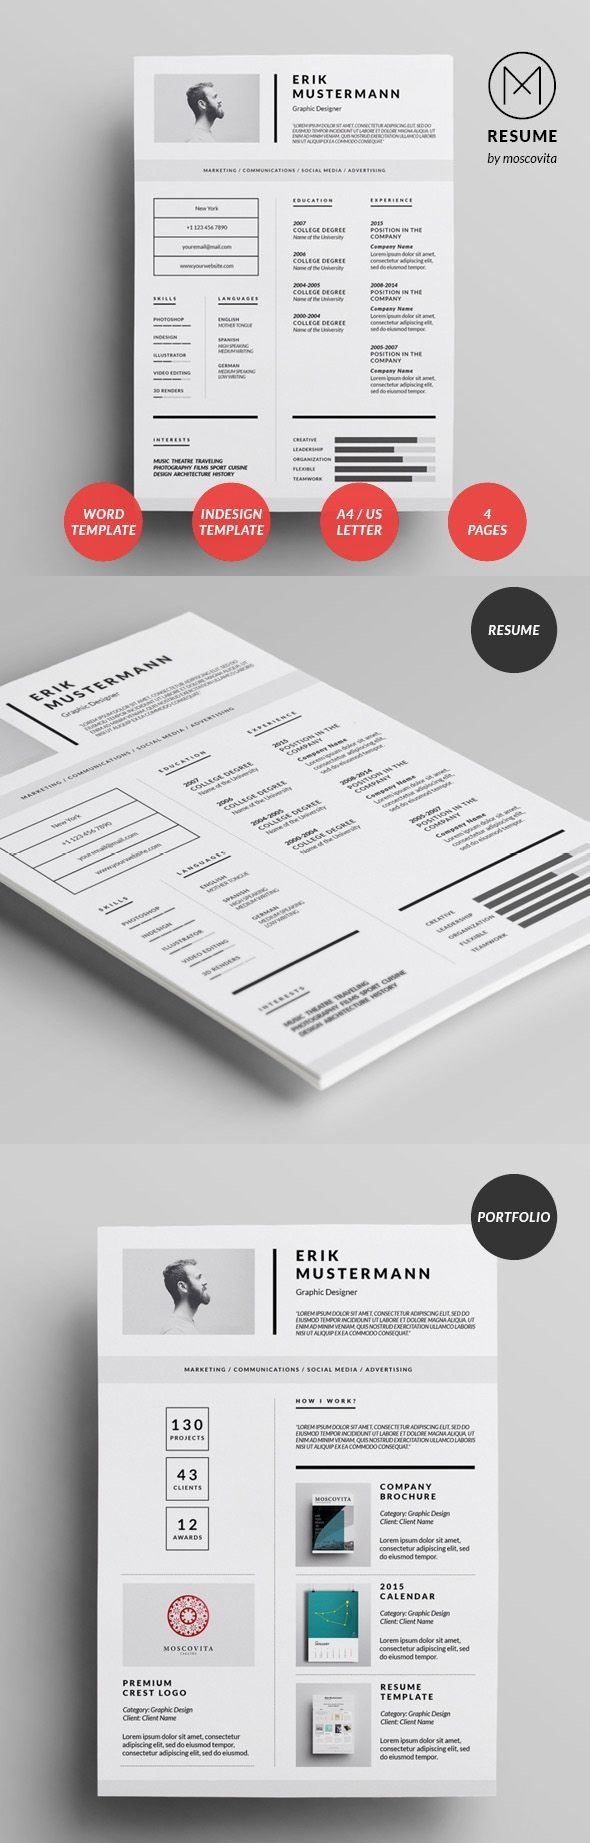 graphic designer resume 2015%0A Creative Modern  Resume  Design